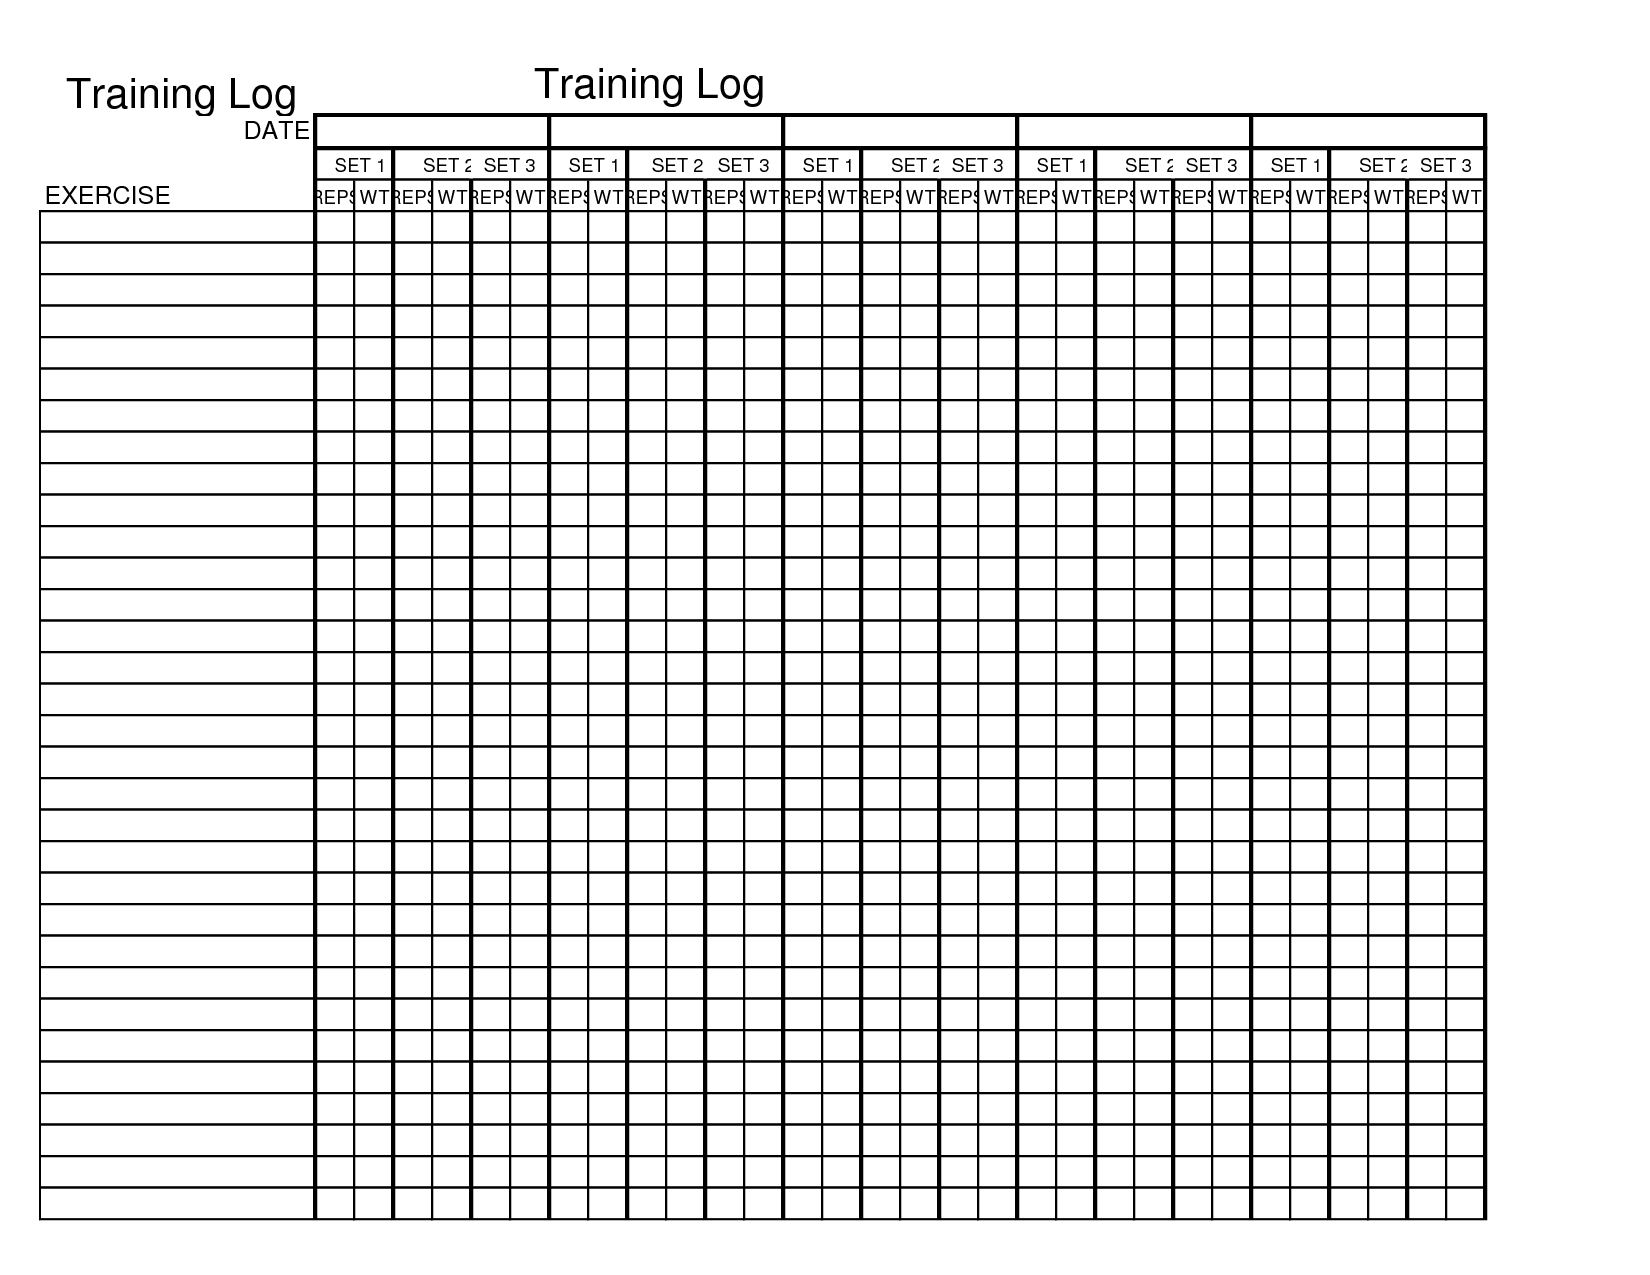 Training log template chp9ktls exercise pinterest for Weight training log template